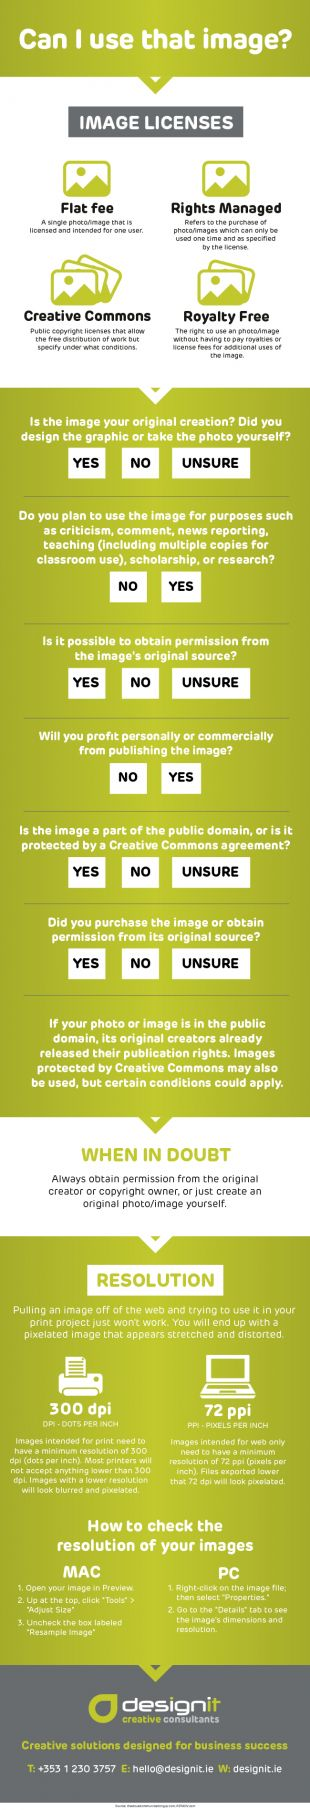 Infographic about image copyright and resolution